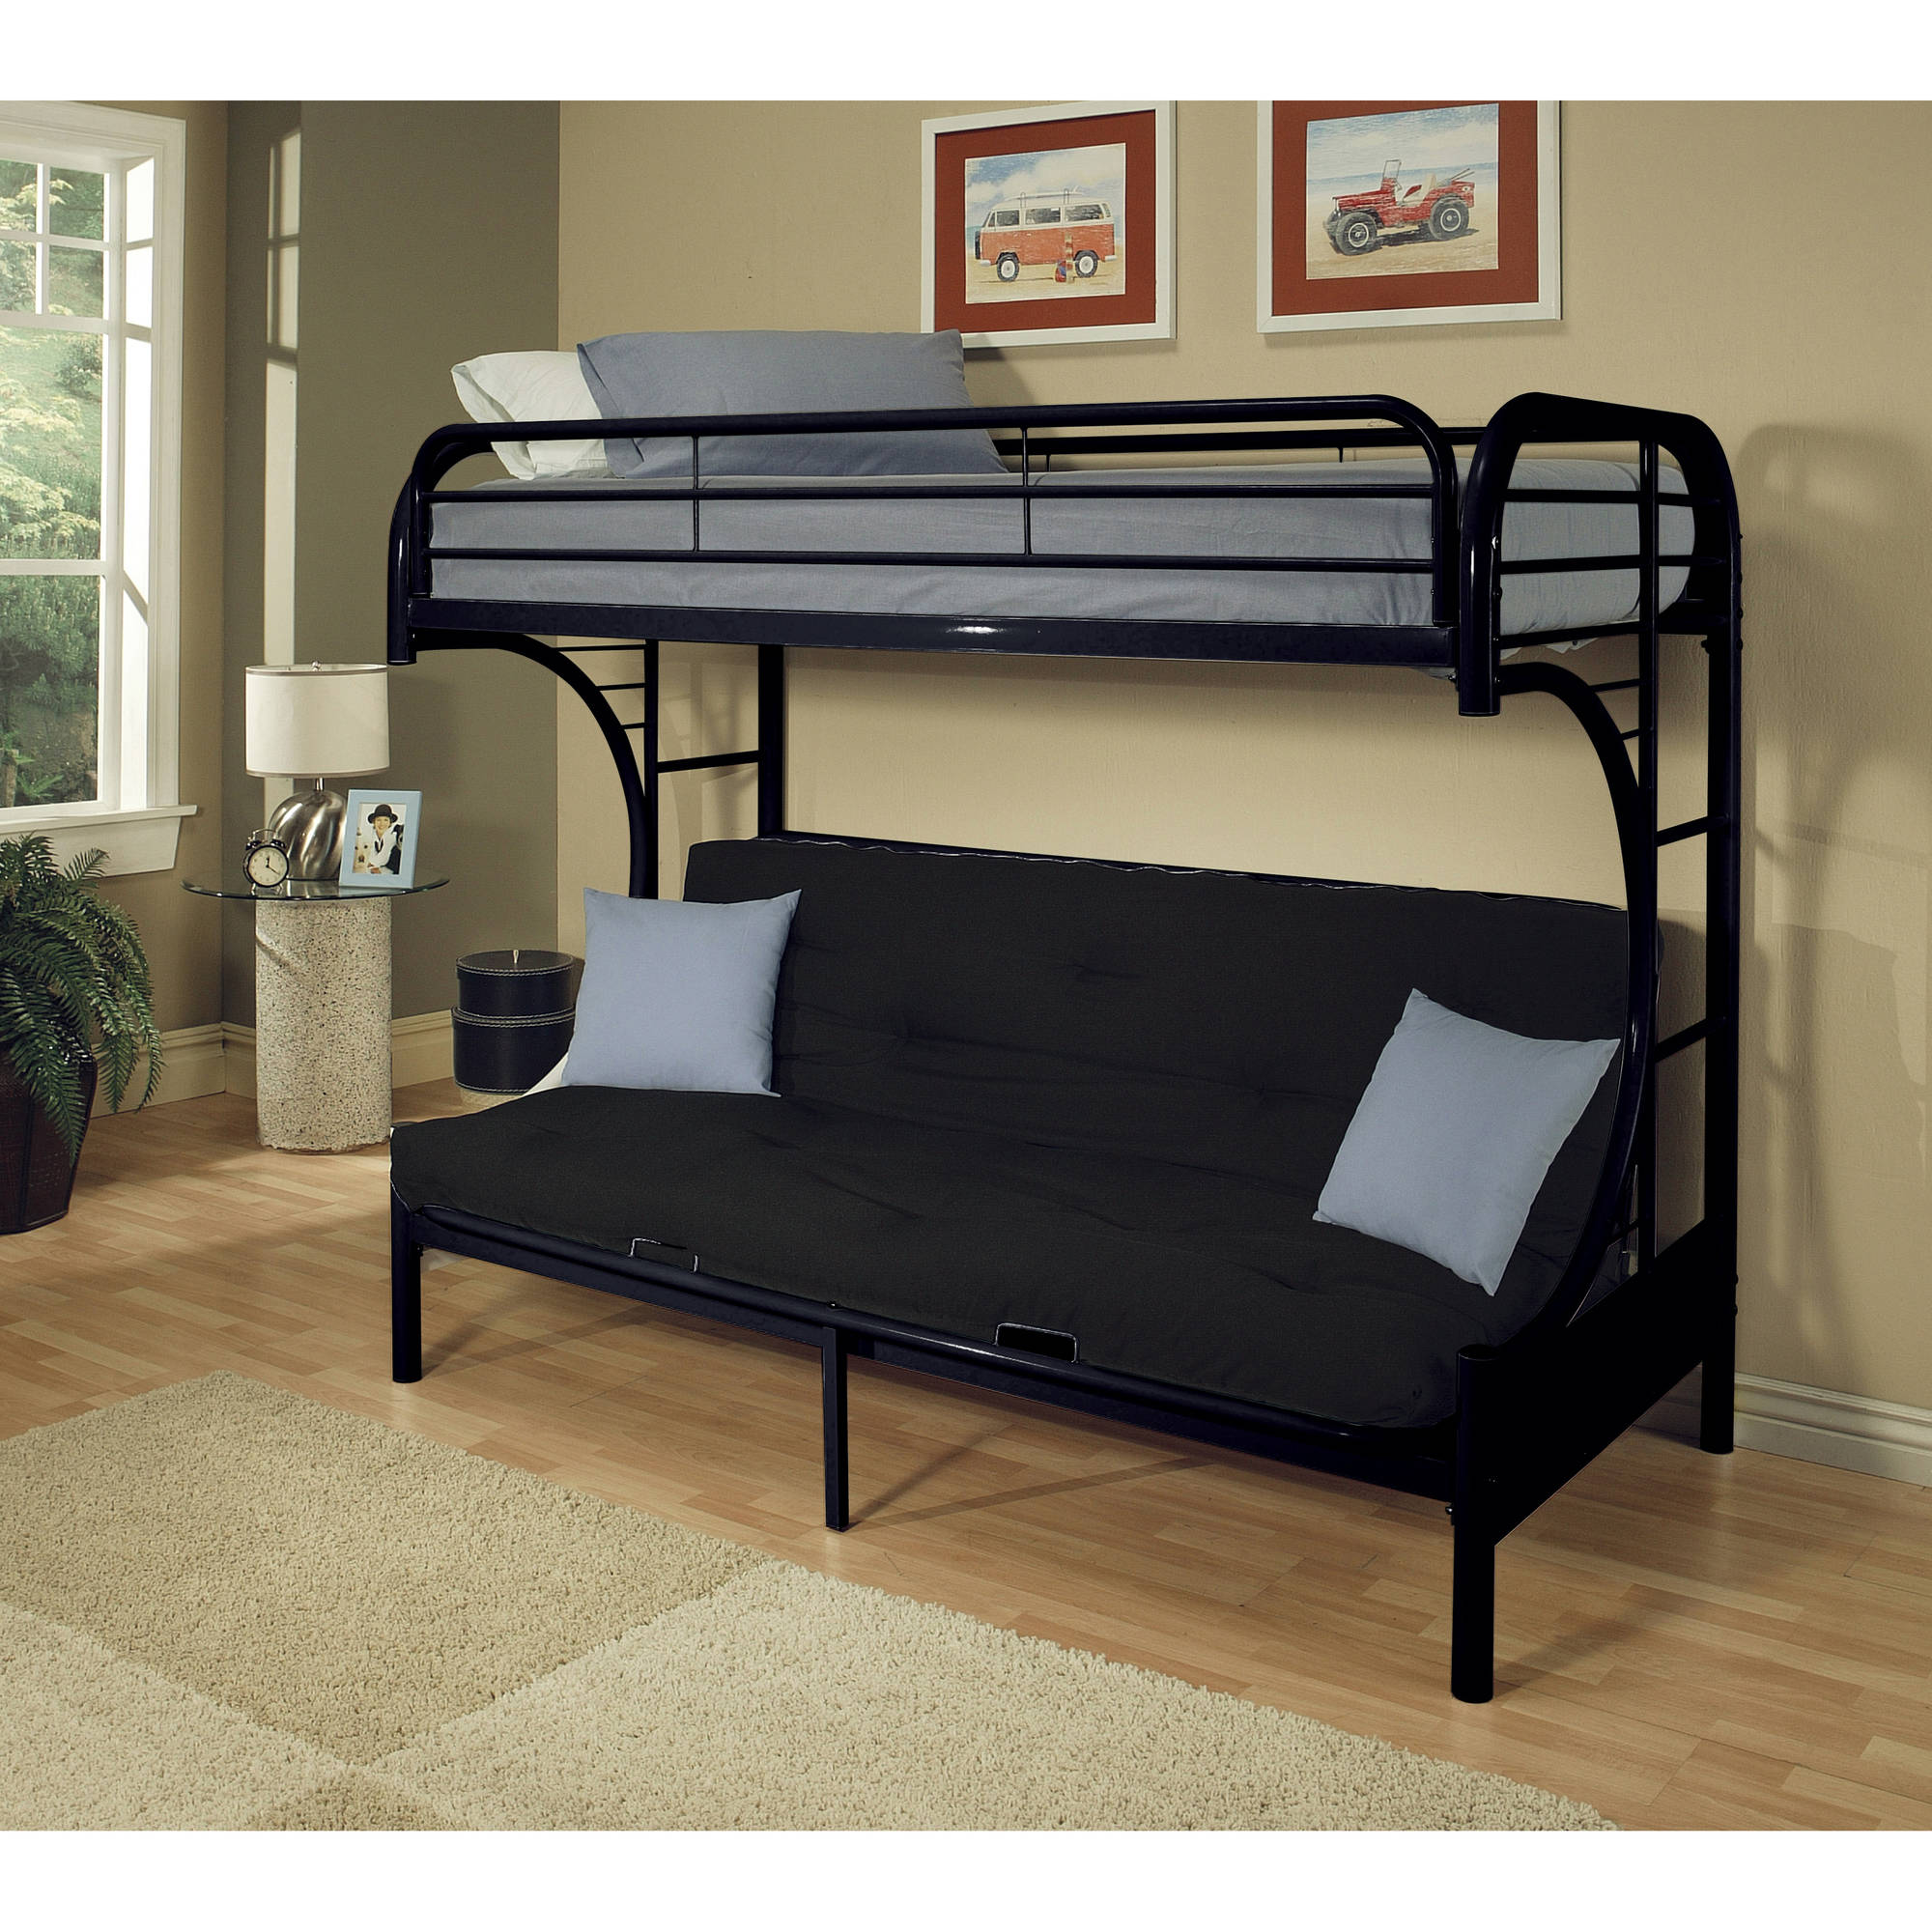 acme eclipse twin xl over futon metal bunk bed black - Xl Twin Bed